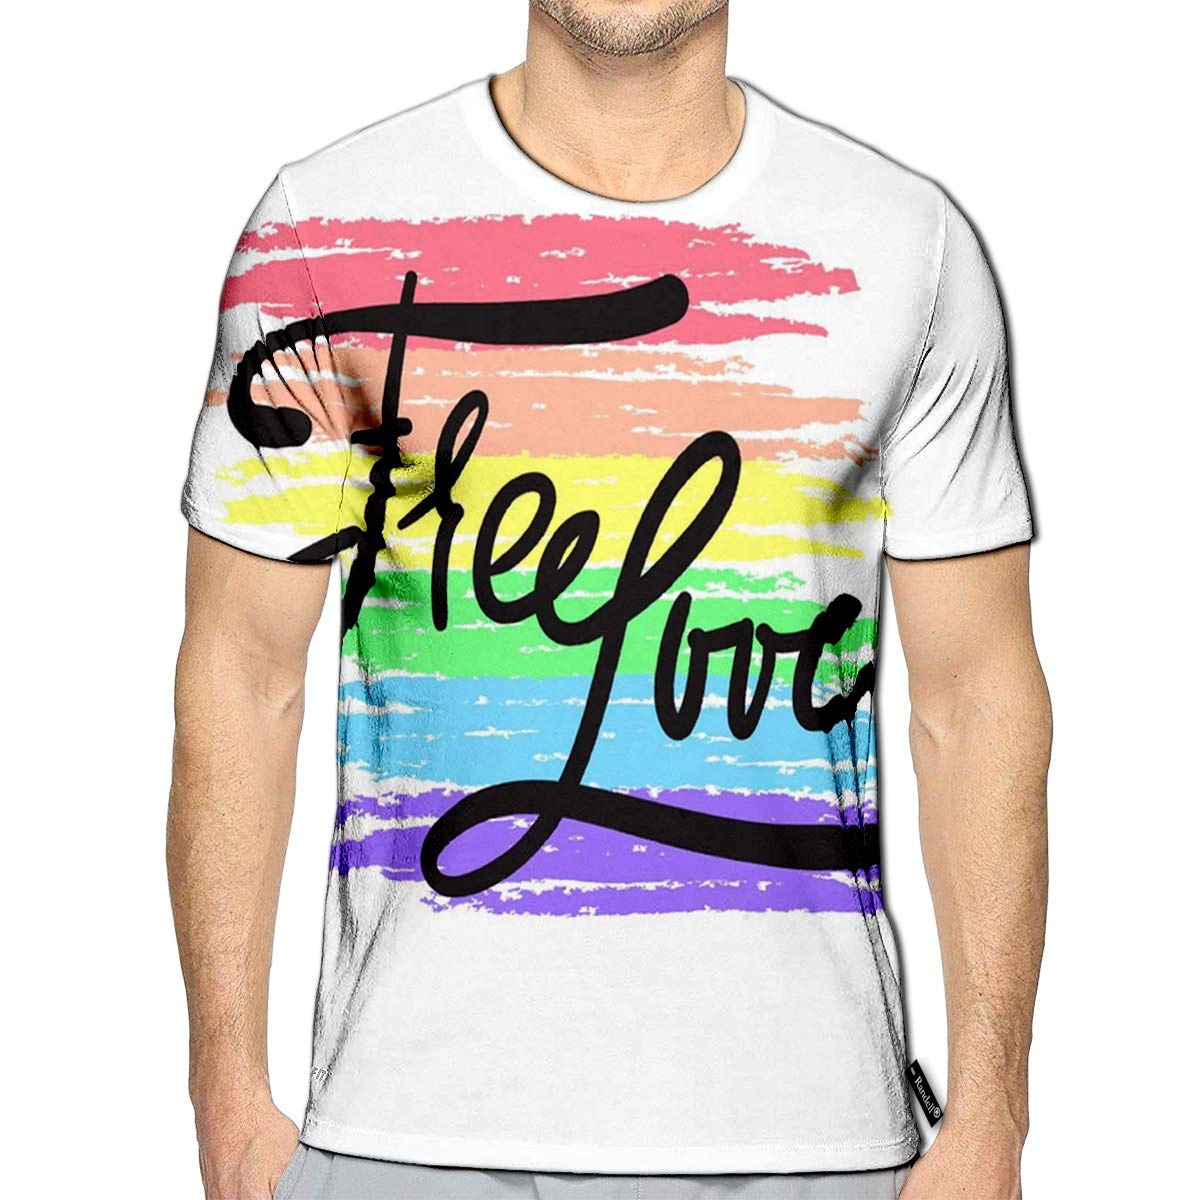 3D Printed T-Shirts Free Love Simple Inspiration Short Sleeve Tops Tees